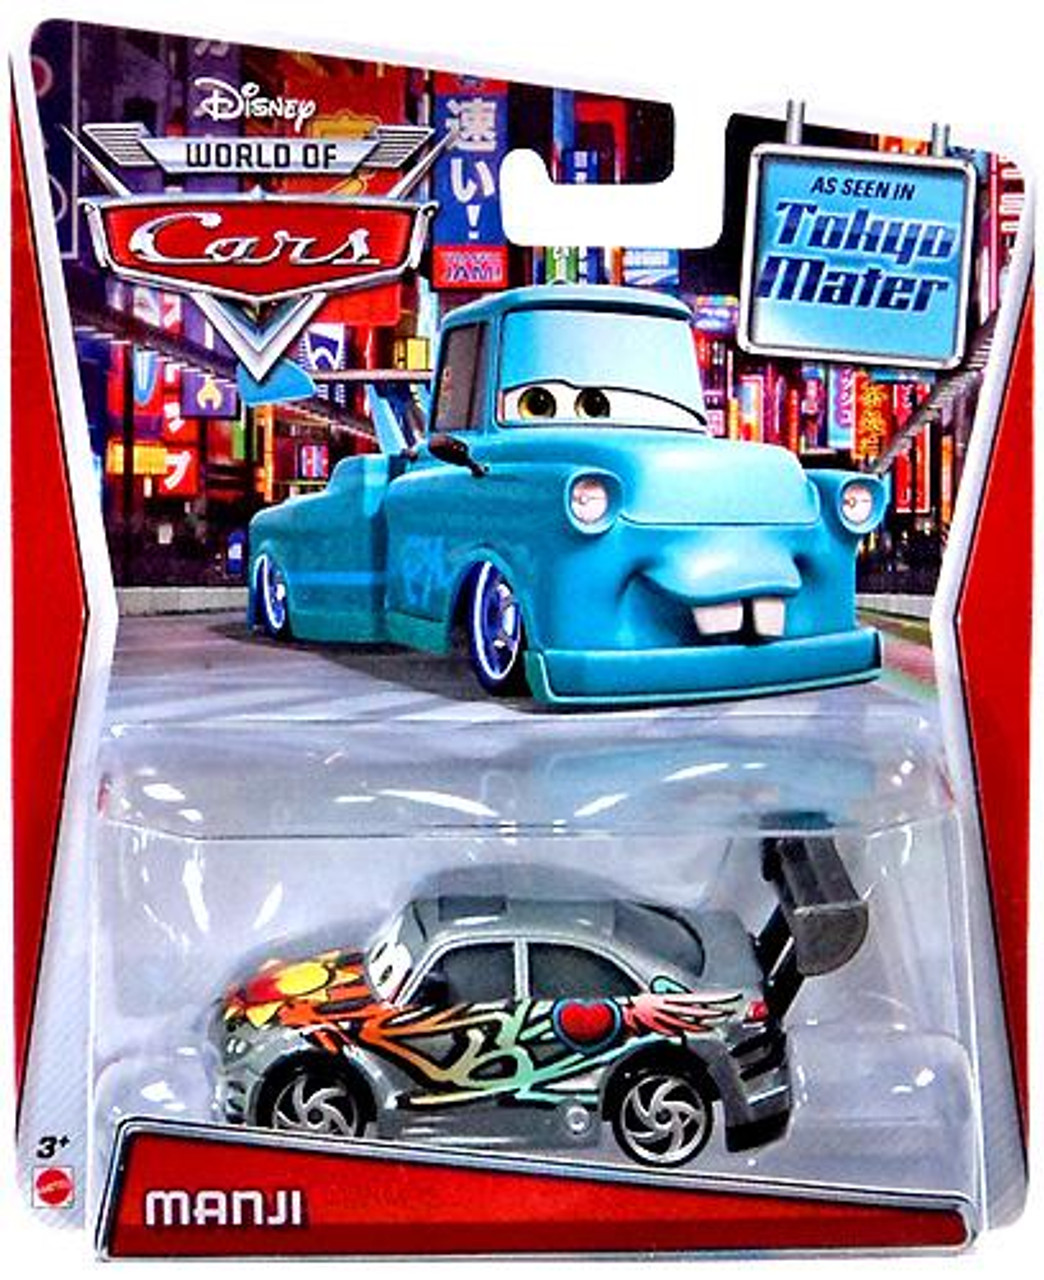 Disney Cars The World of Cars Series 2 Manji Exclusive Diecast Car